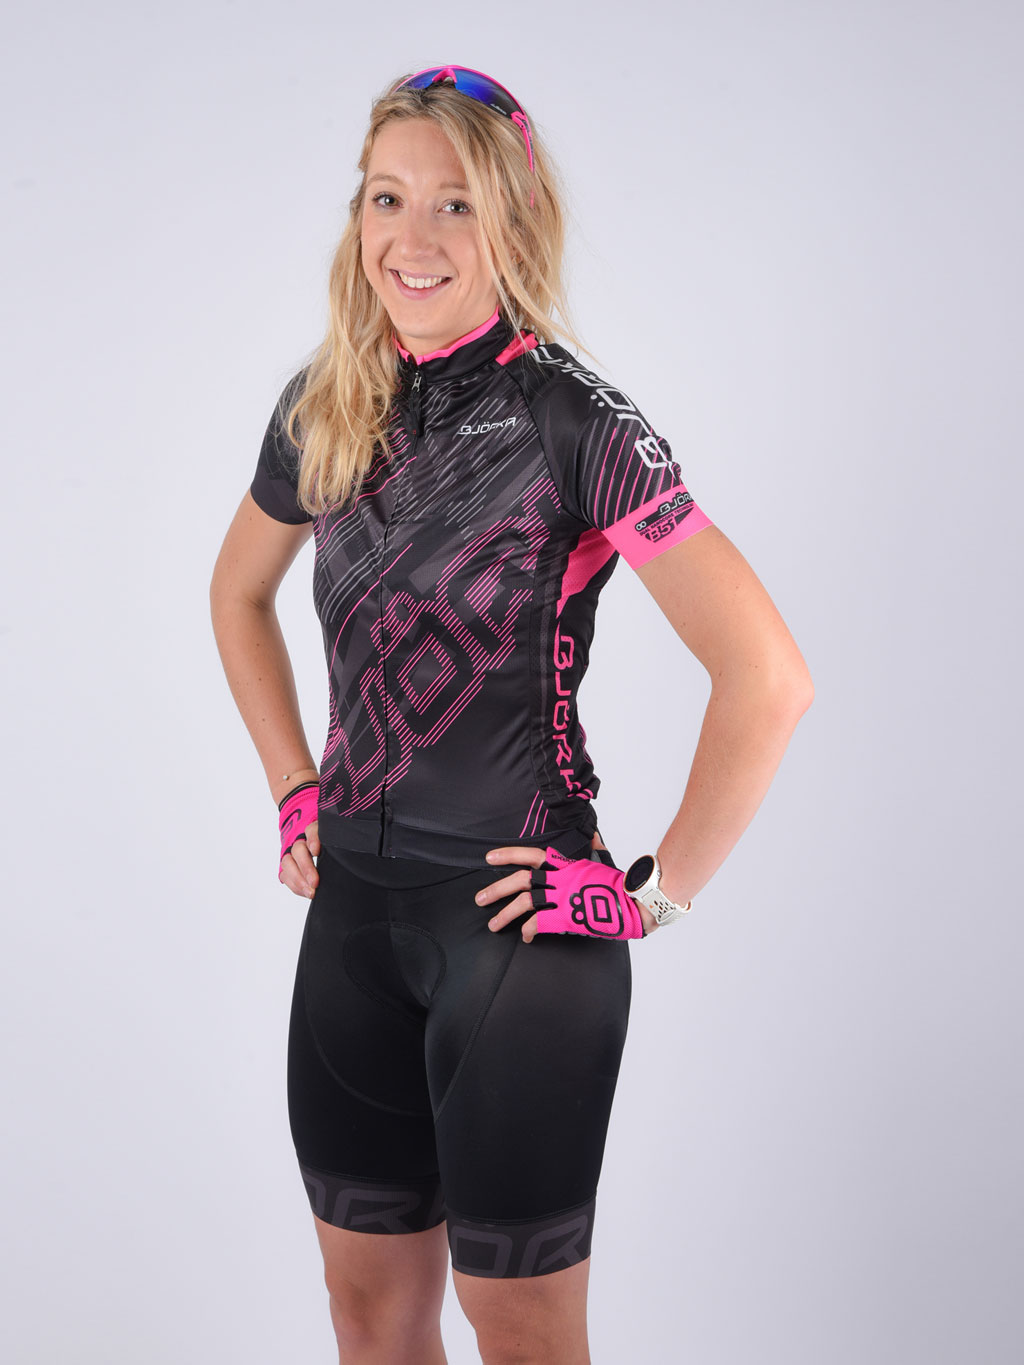 Maillot Kiss Cuissard Bjorka femme velo sourire